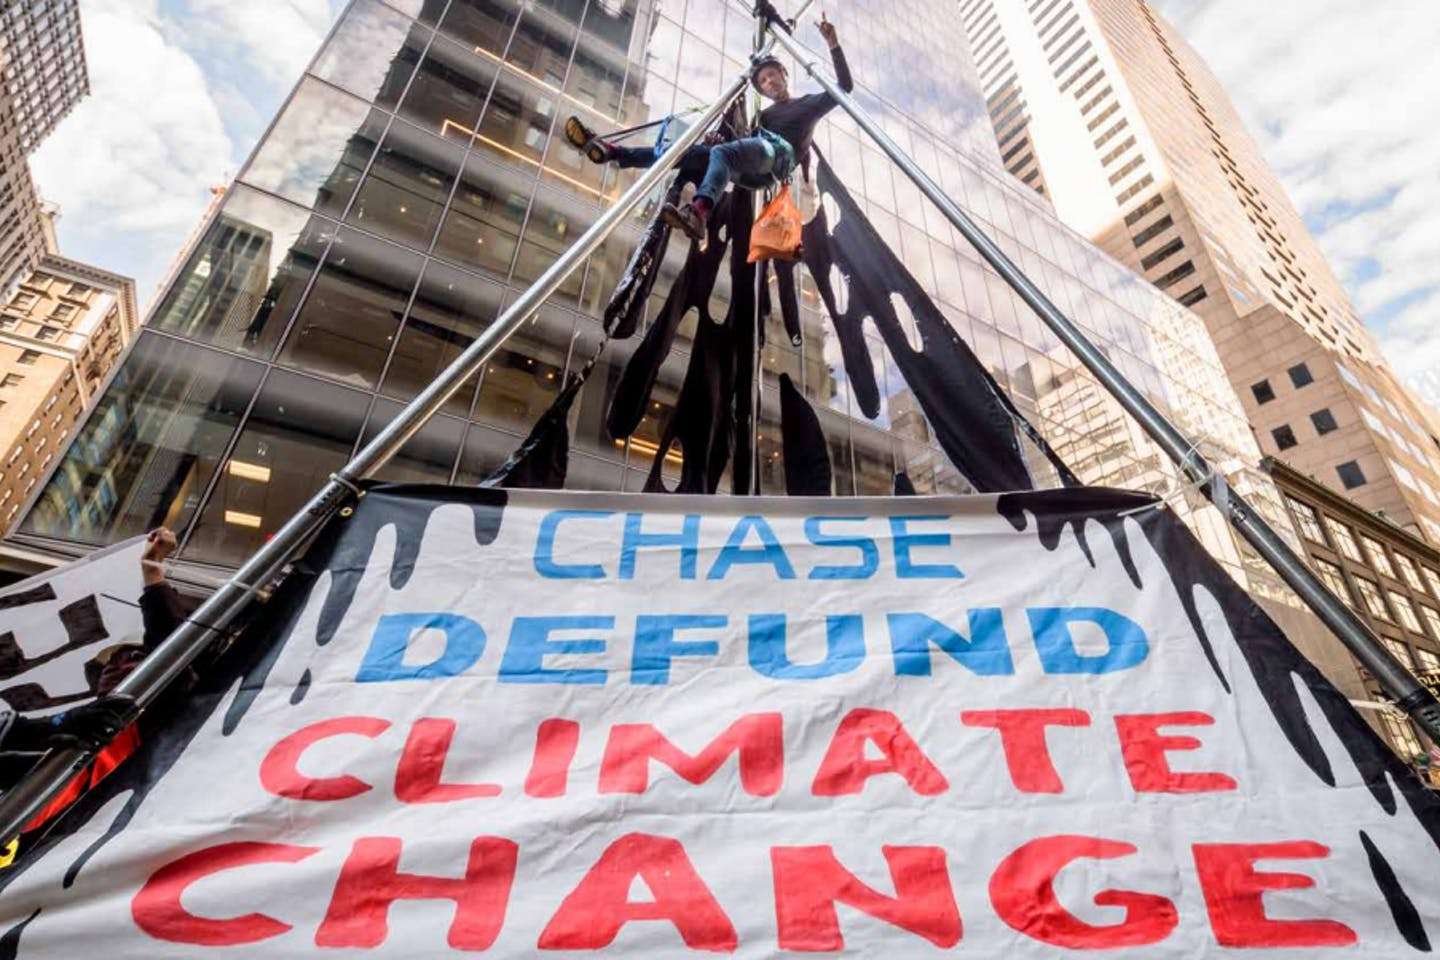 An activist protesting against JP Morgan Chase's fossil fuel financing in the United States.